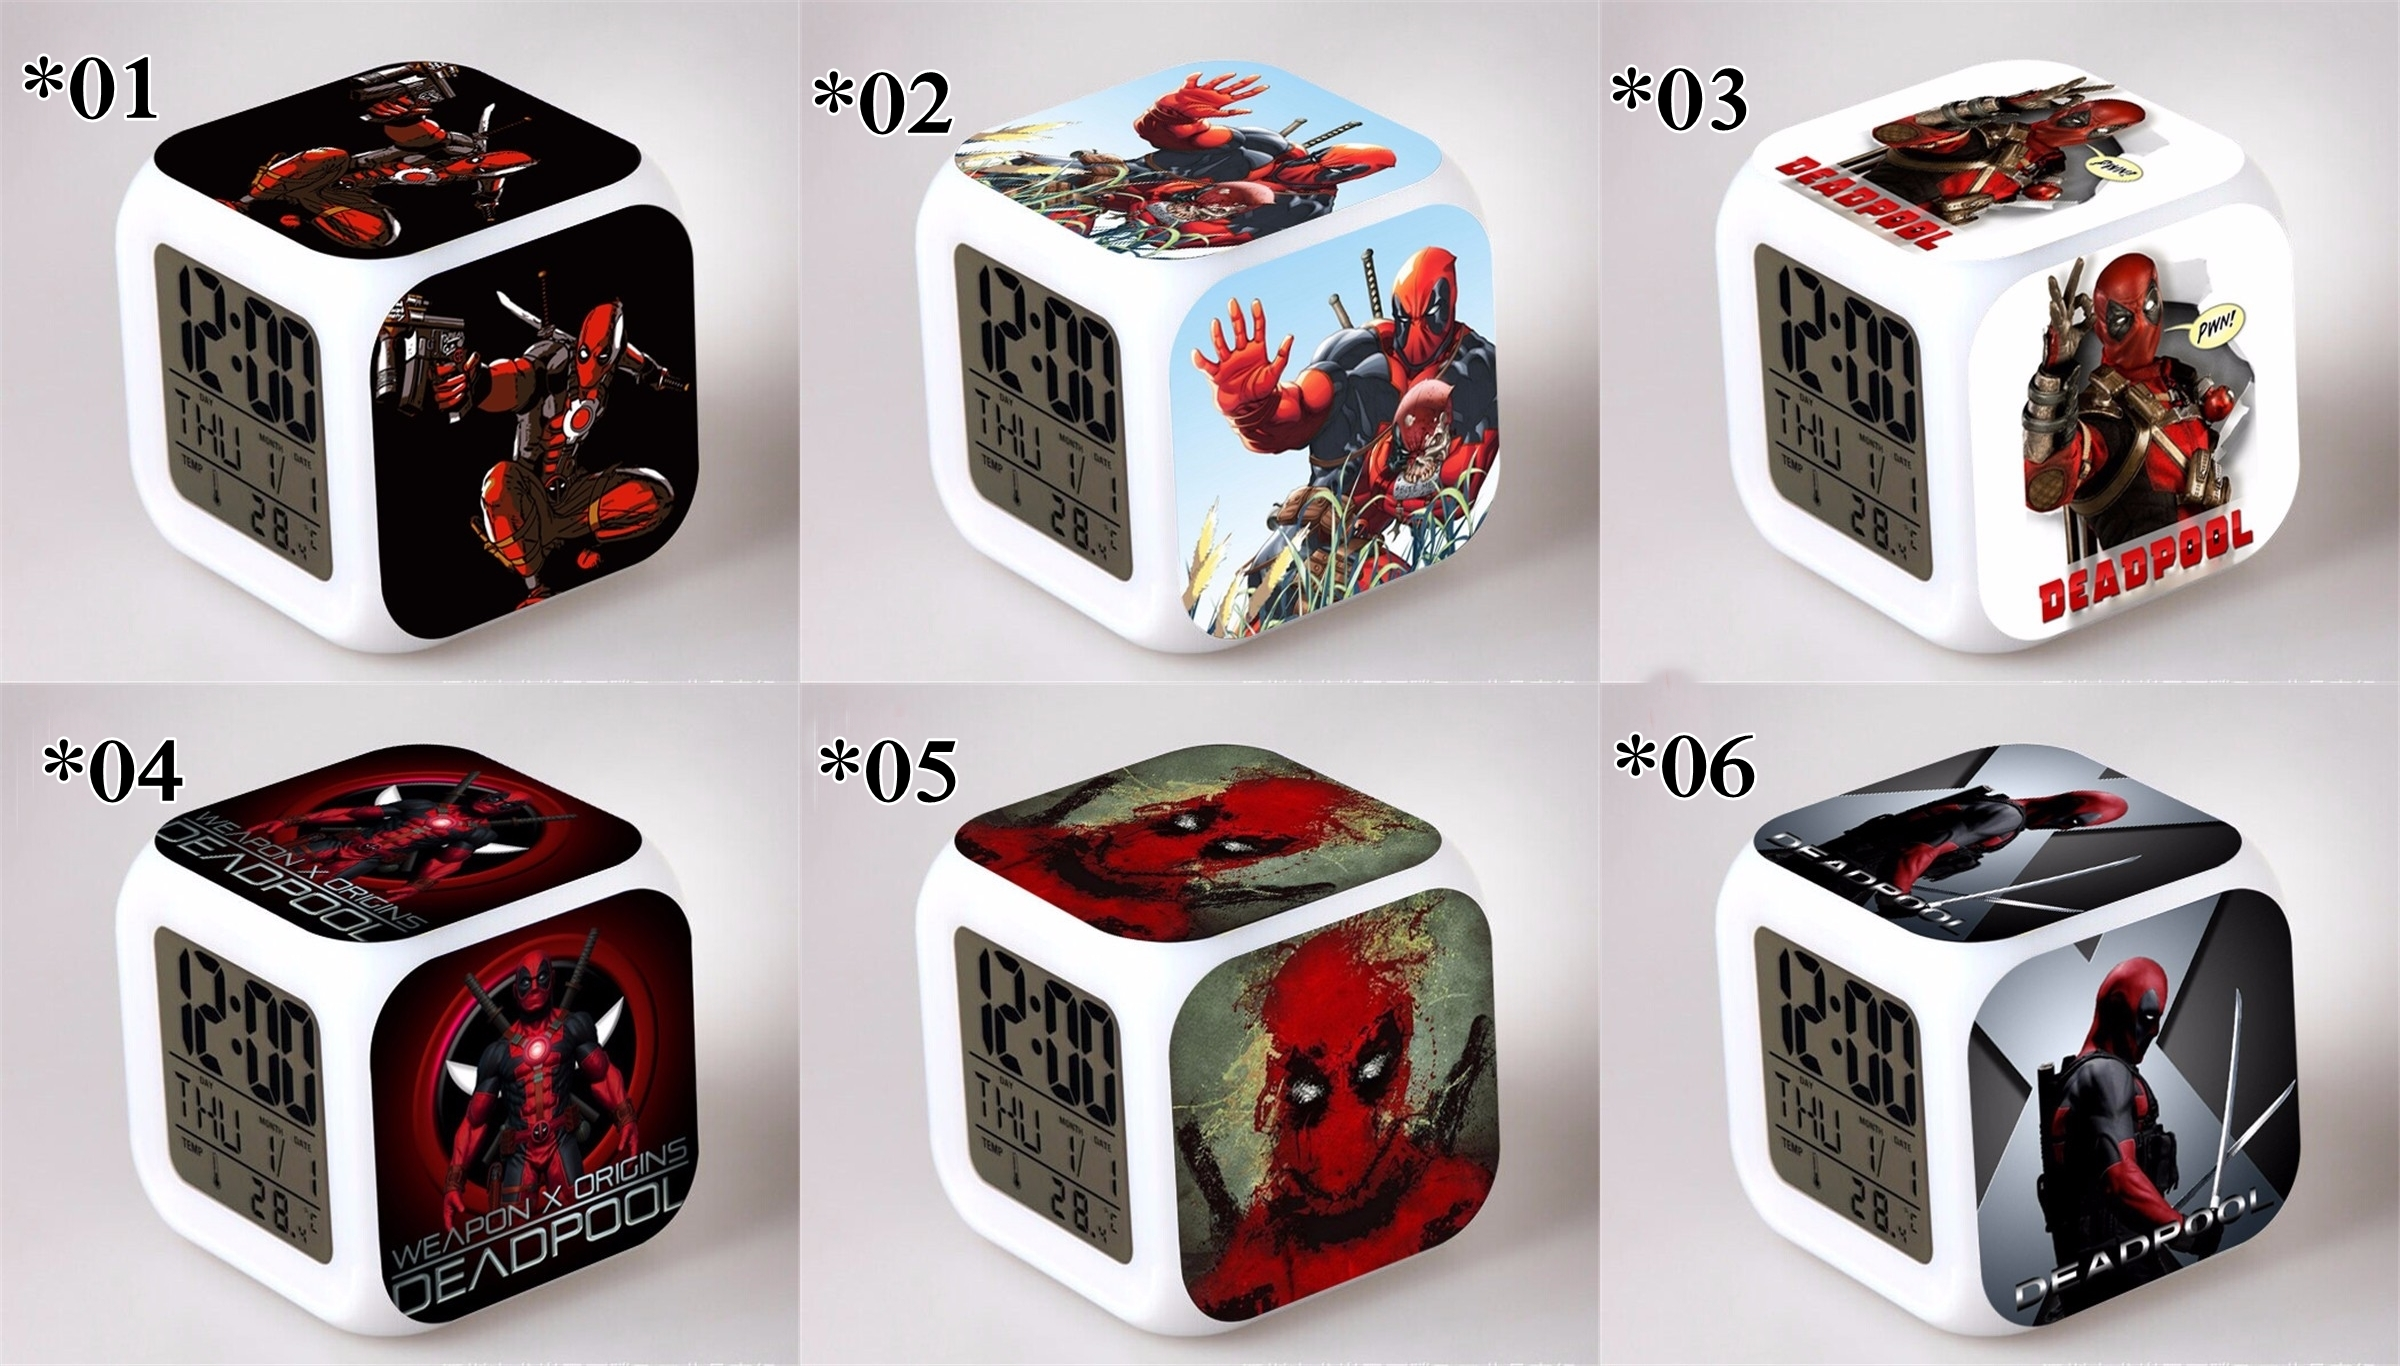 Relojes digitales Dead Pool *03